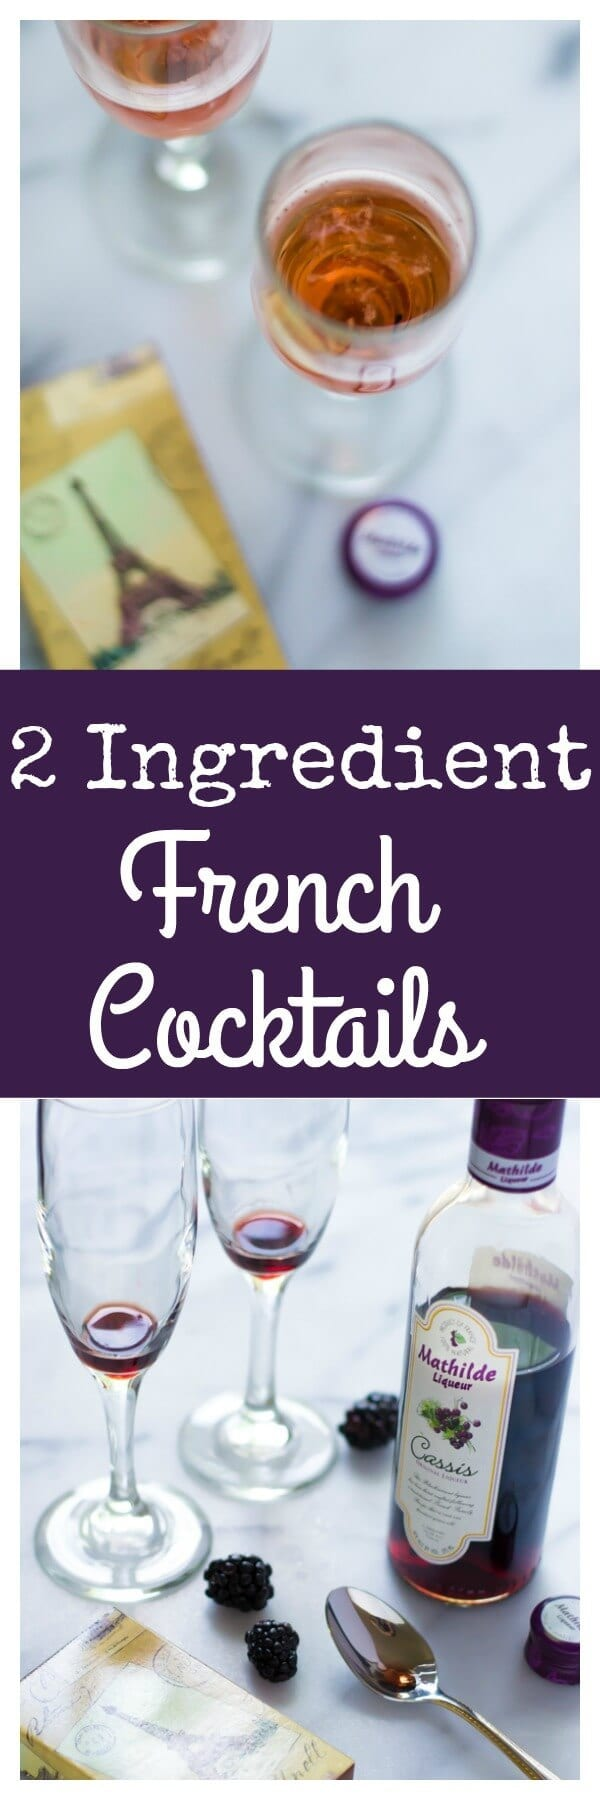 2 Ingredient French Cocktails. A timeless cocktail in honor of the Eternal City!